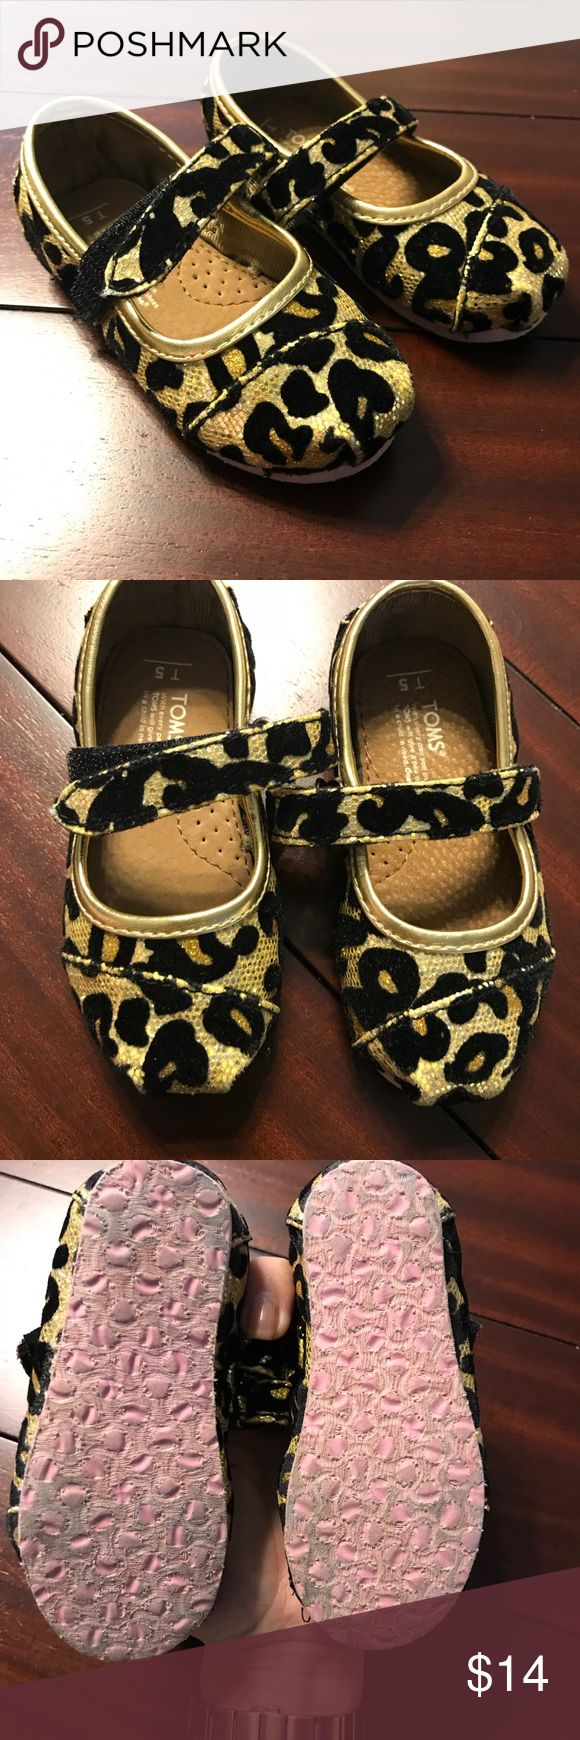 Leopard Toms Leopard metallic Toms Excellent condition Worn once Toms Shoes Sandals & Flip Flops